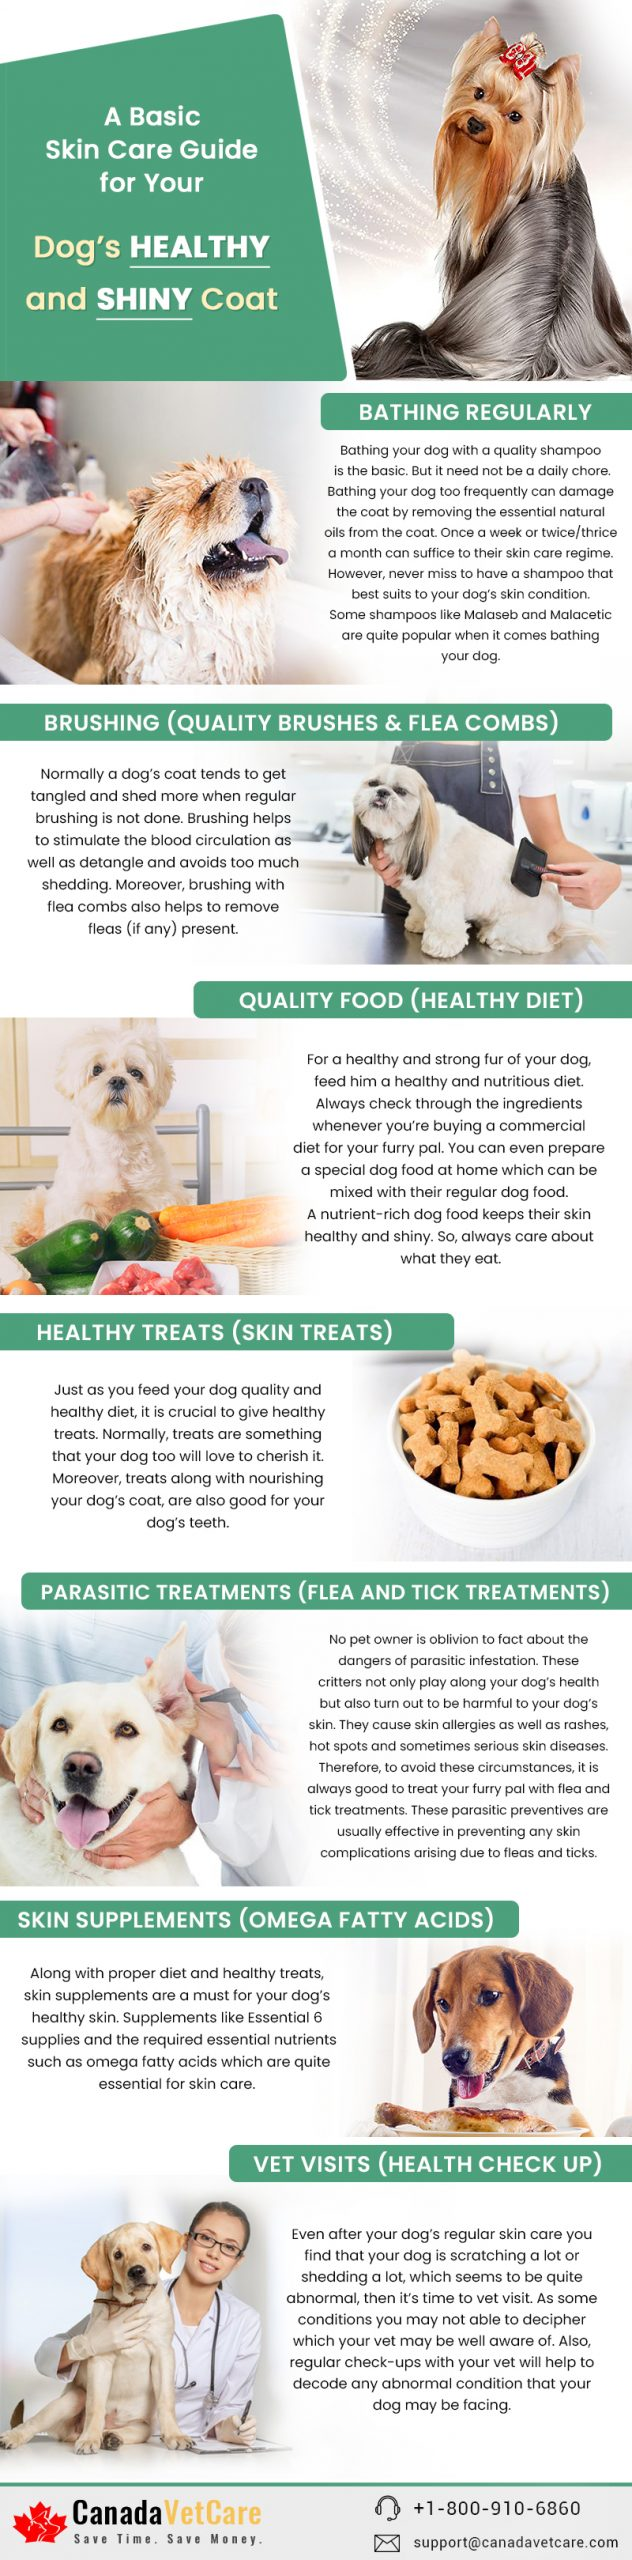 a-basic-skin-care-guide-for-your-dog's-healthy-and-shiny-coat